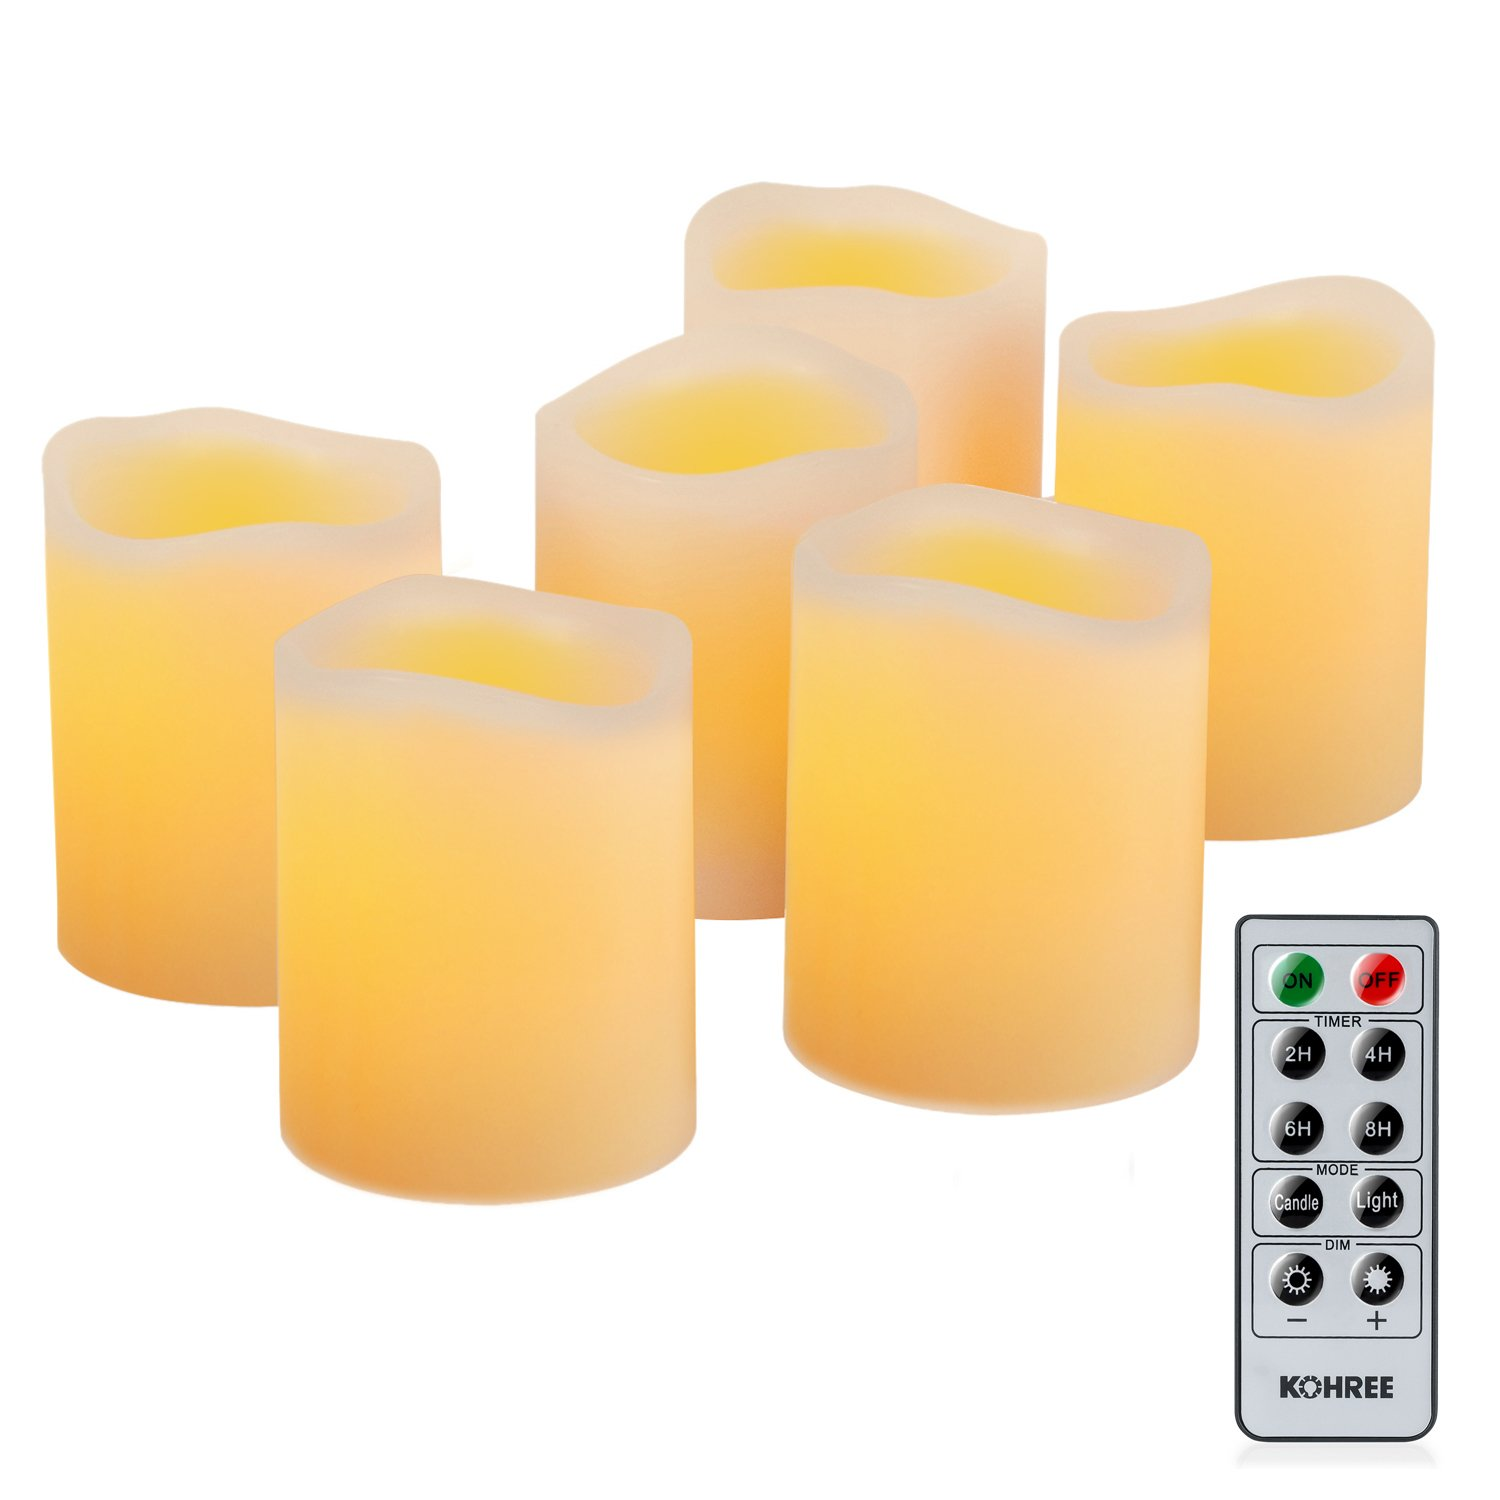 Kohree Real Wax Candle LED Flameless Candle Remote Control Candles Battery Operated Retro Unscented Ivory Votive Pillar Candles Light, Warm White Pack of 6 by Kohree